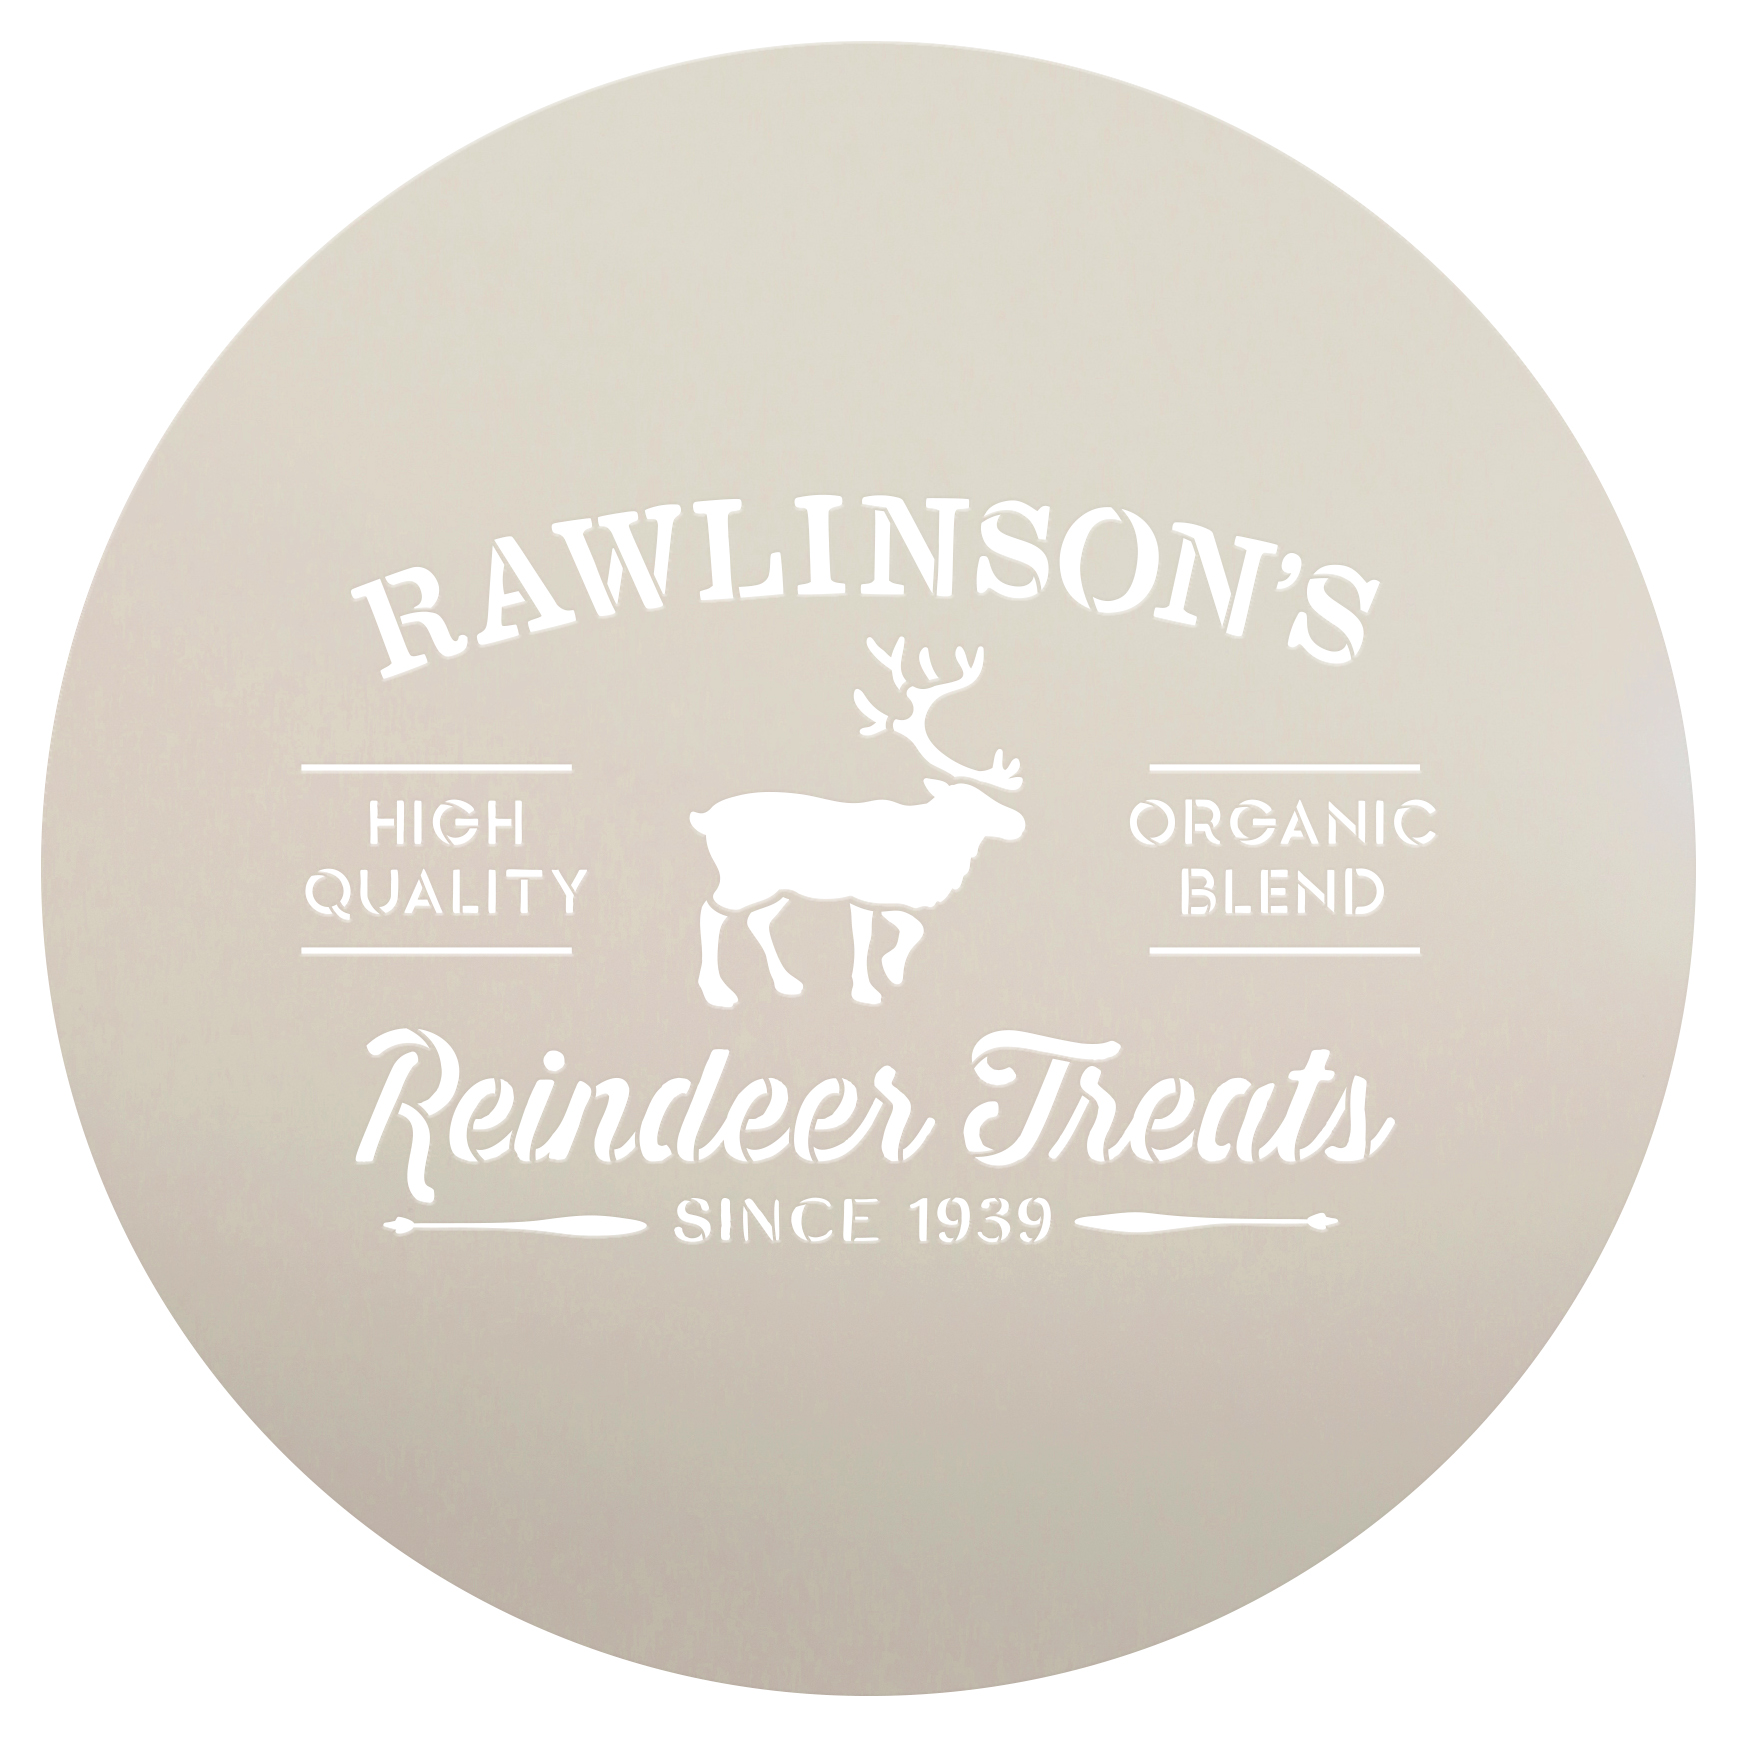 "Personalized Stencil by StudioR12 | Family Name| Reindeer Treats Christmas Word Art - Reusable Mylar Template | DIY | Christmas | 14"" Round 